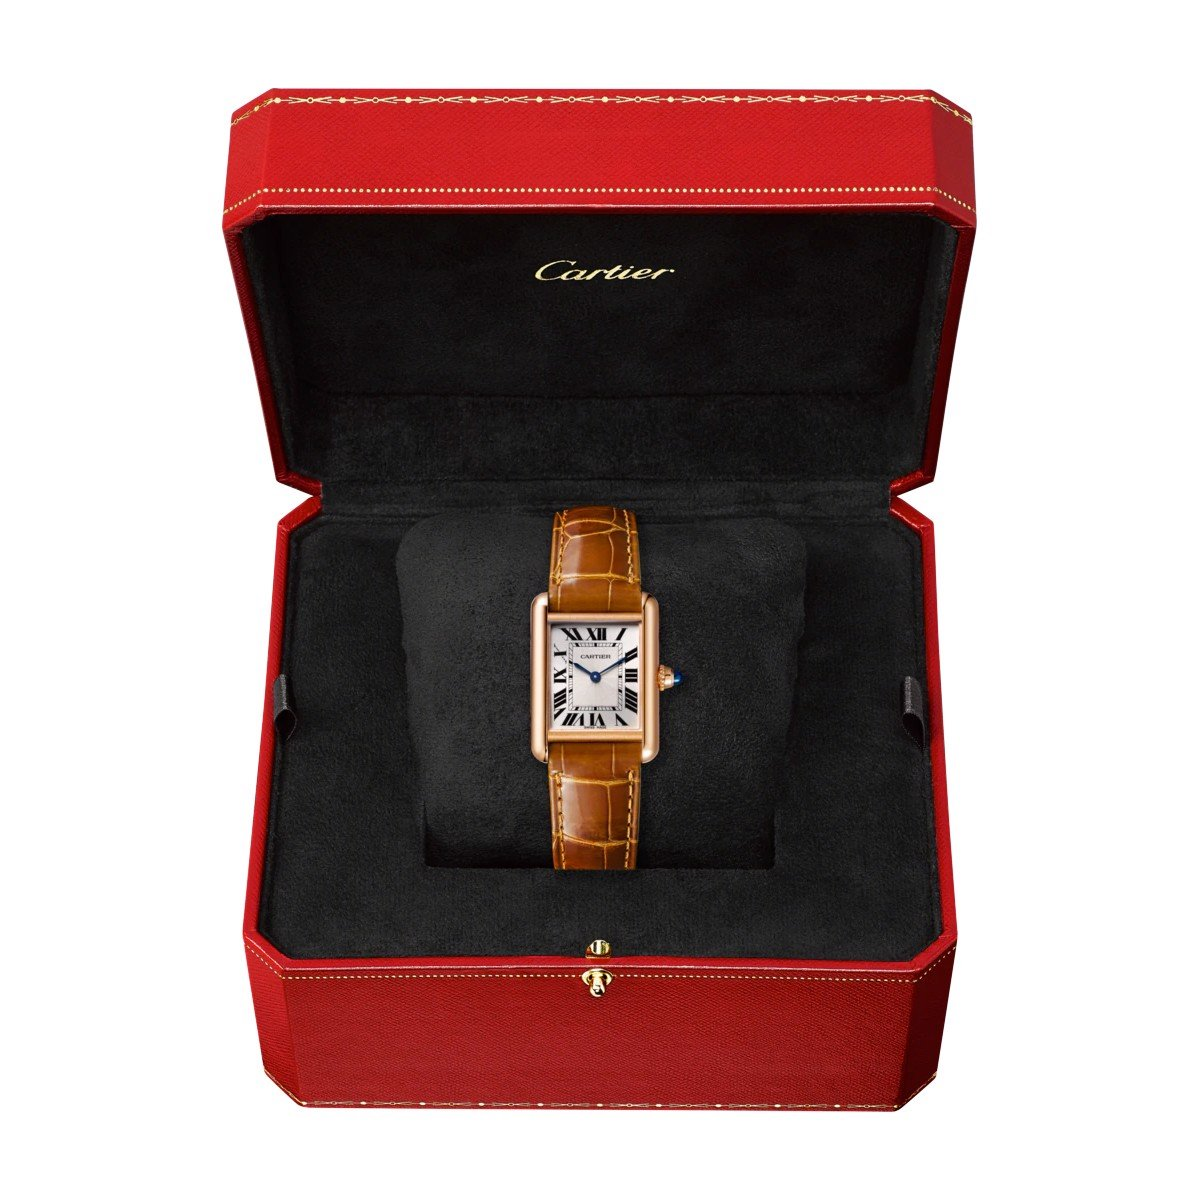 Cartier Tank Louis Cartier Small Model Pink Gold Leather